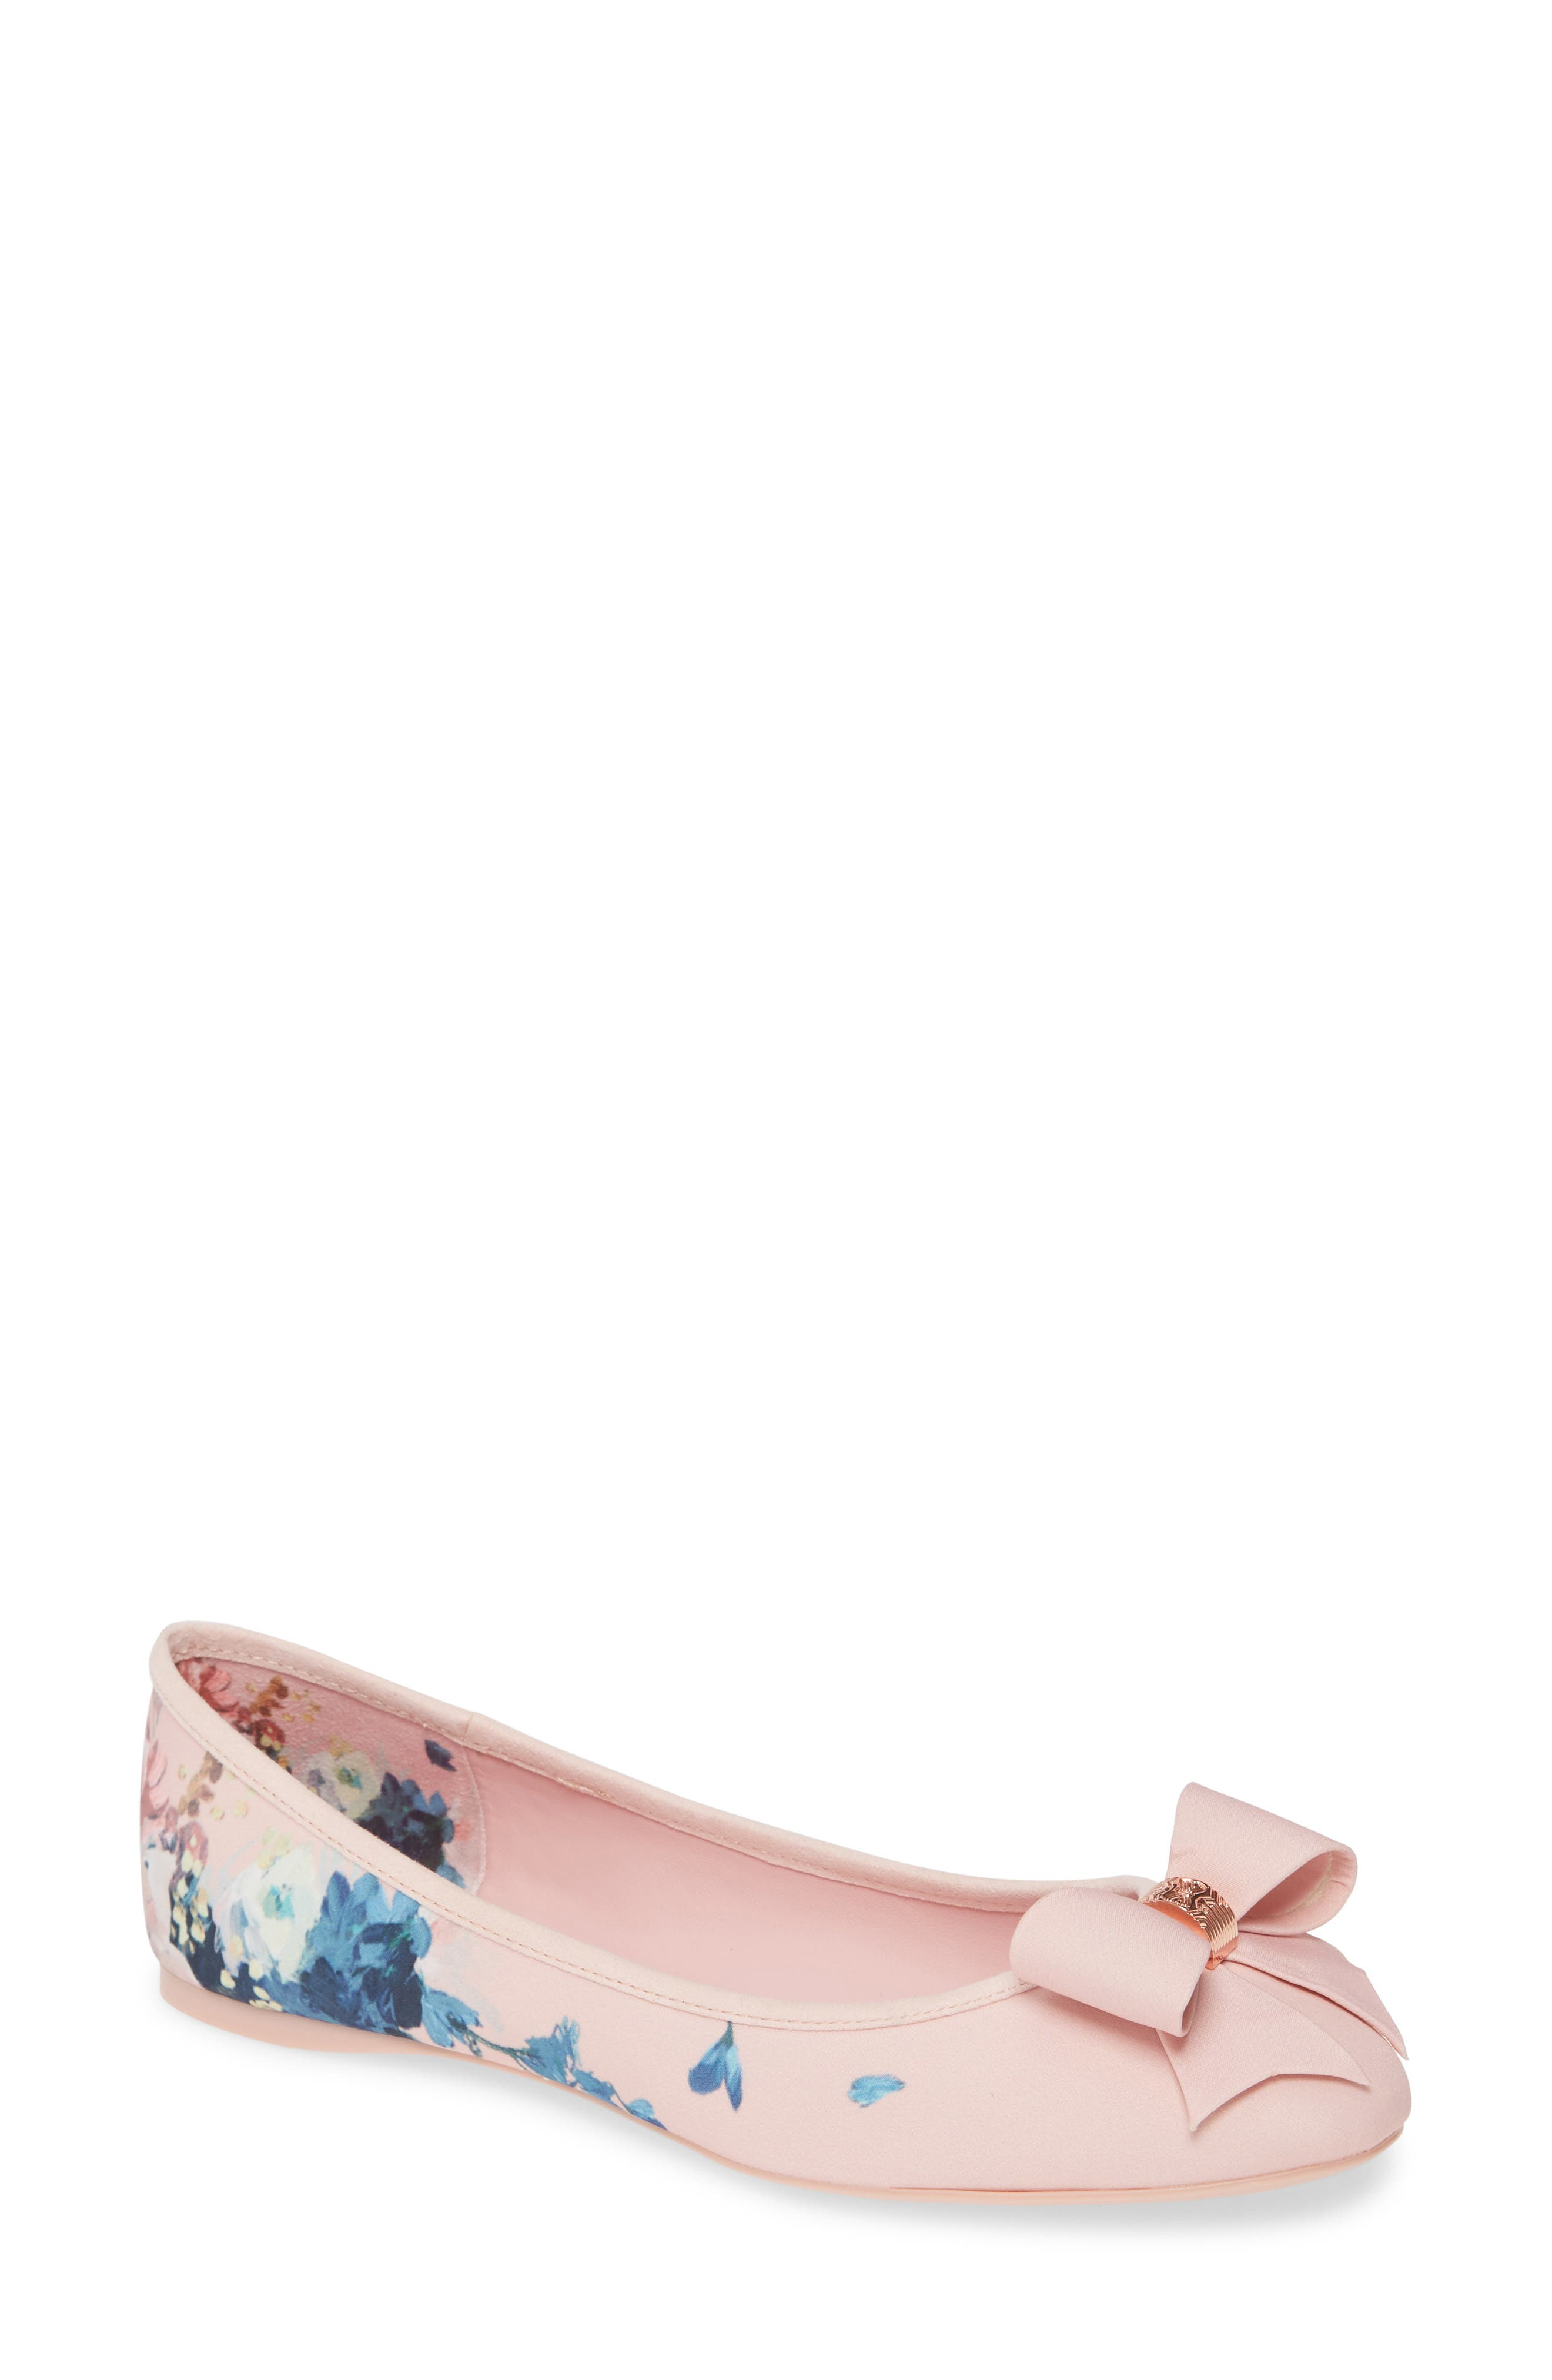 Ted Baker London Suallip Flat, Pink